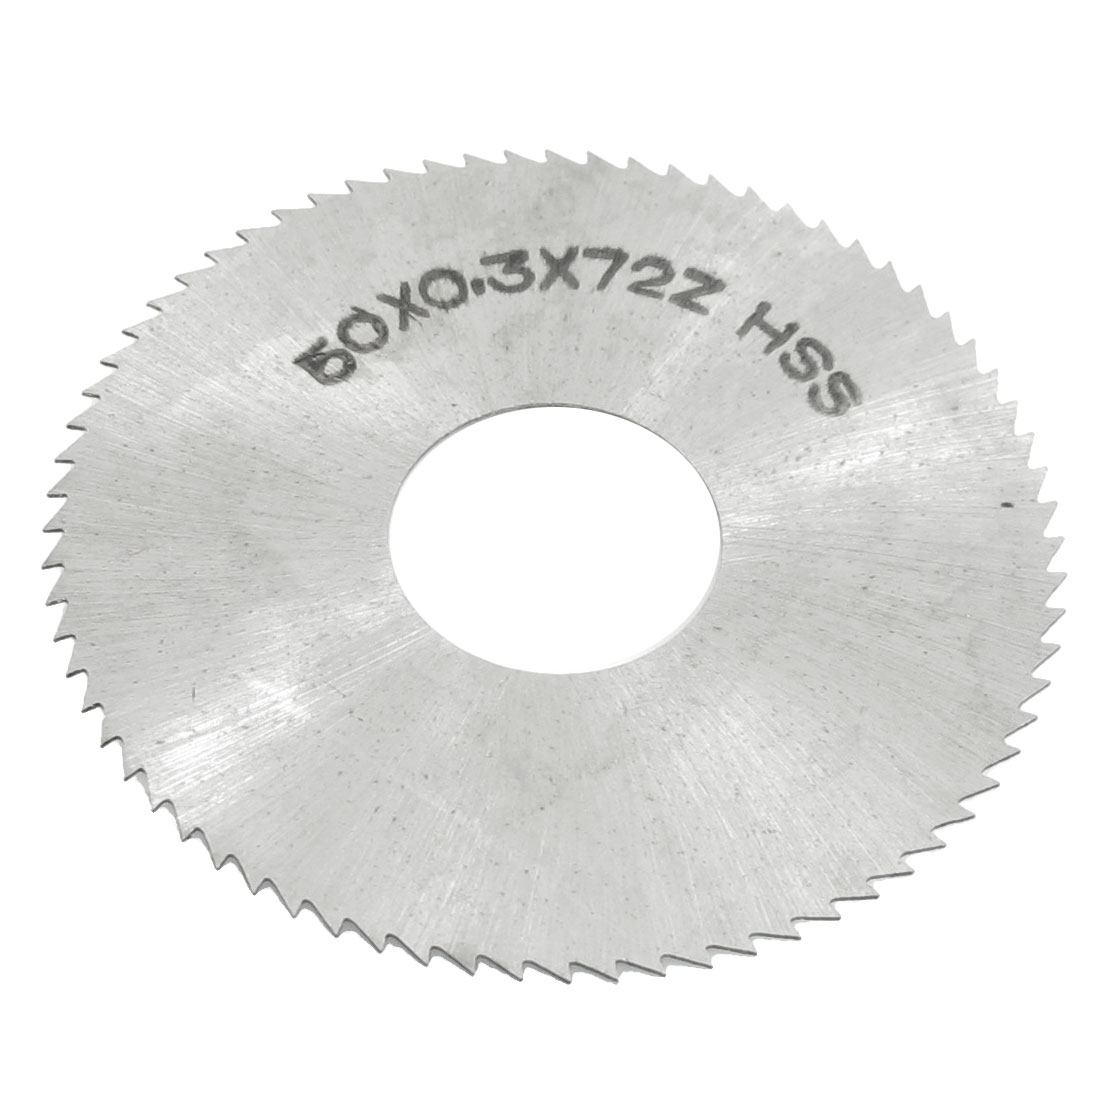 HSS 50mm Dia 0.3mm Thickness 72 Teeth Circular Milling Cutter Saw